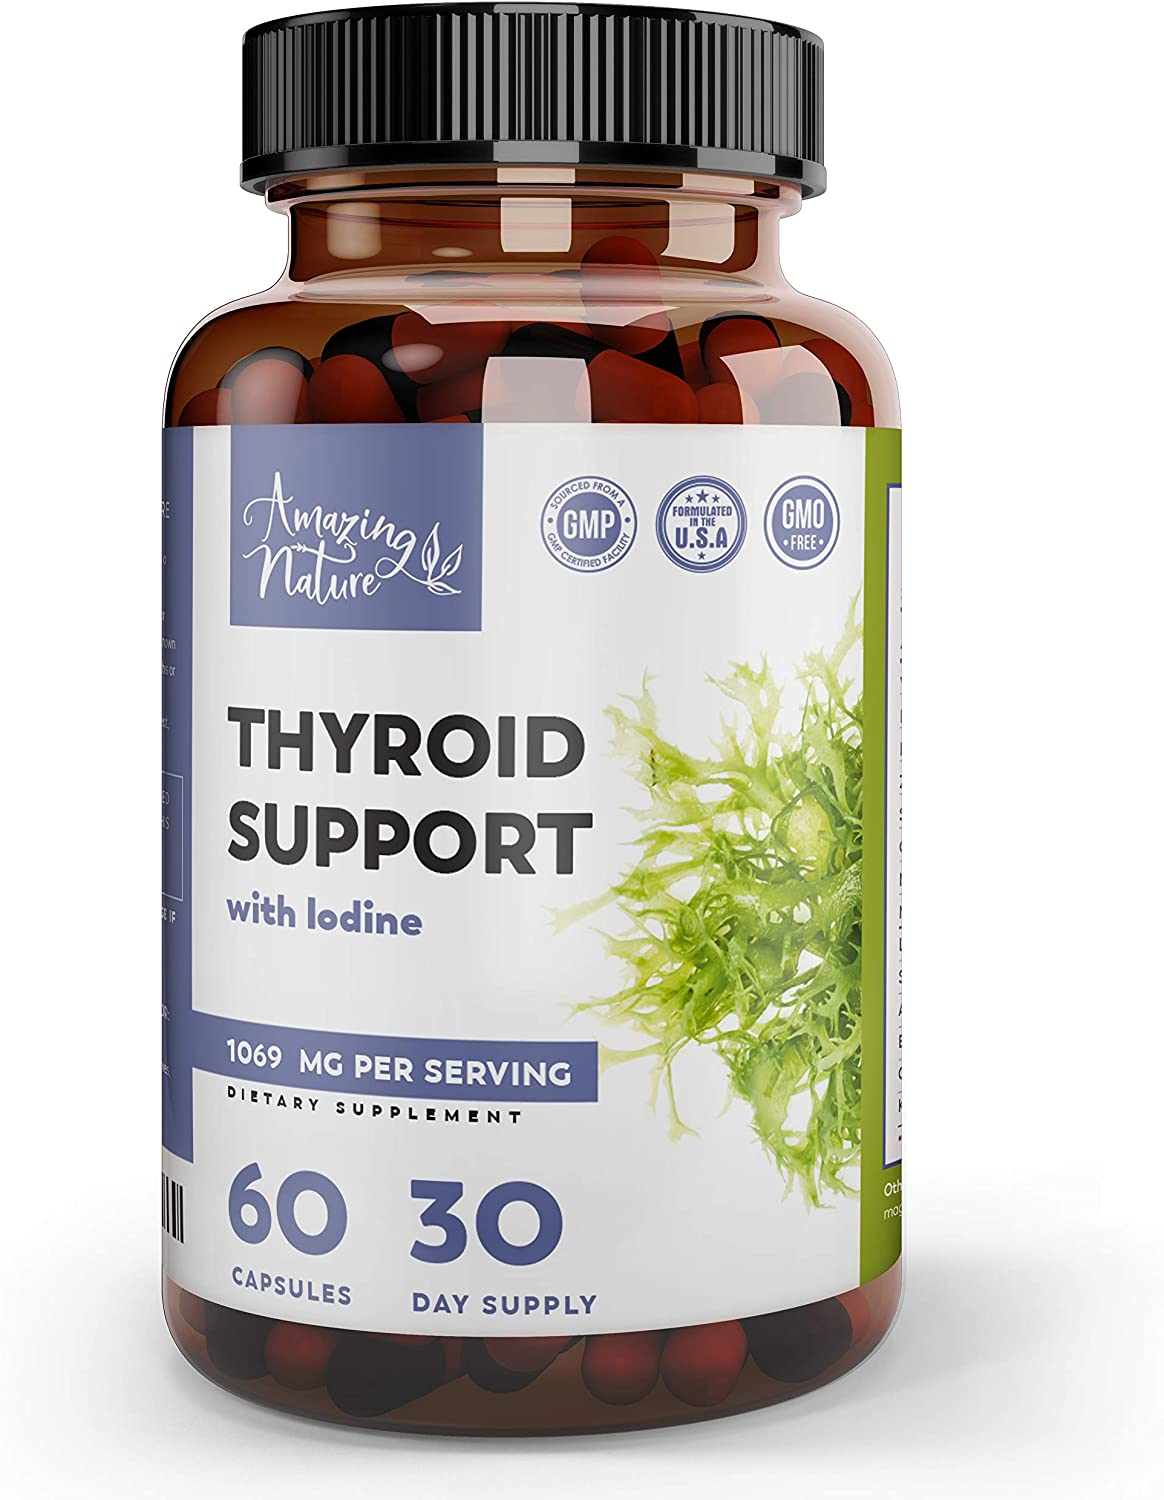 Thyroid Support & Iodine Supplement – Metabolism Booster, Lose Weight & Energy Pills for Thyroid Energy with Selenium, Magnesium & Adaptogens – Ashwagandha, L-Tyrosine, Kelp